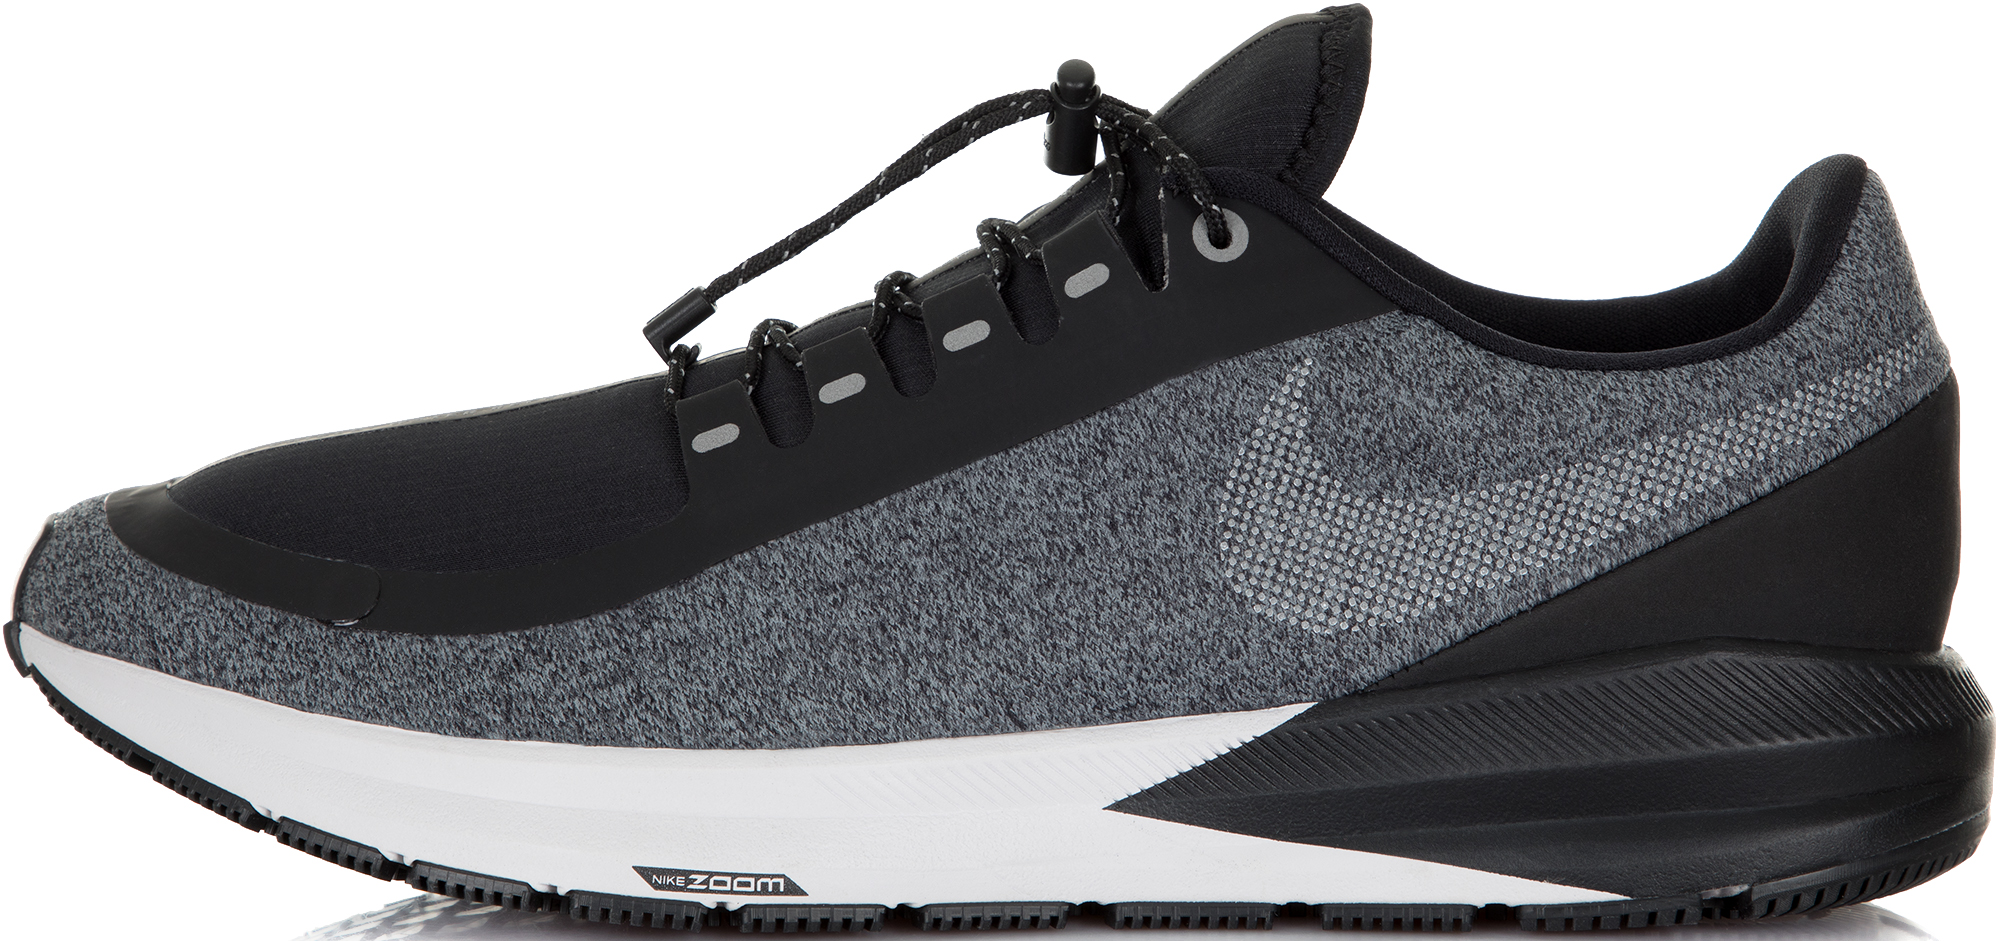 Nike Кроссовки мужские Nike Air Zoom Structure 22 Shield, размер 44 nike кроссовки мужские nike air zoom structure 22 shield размер 44